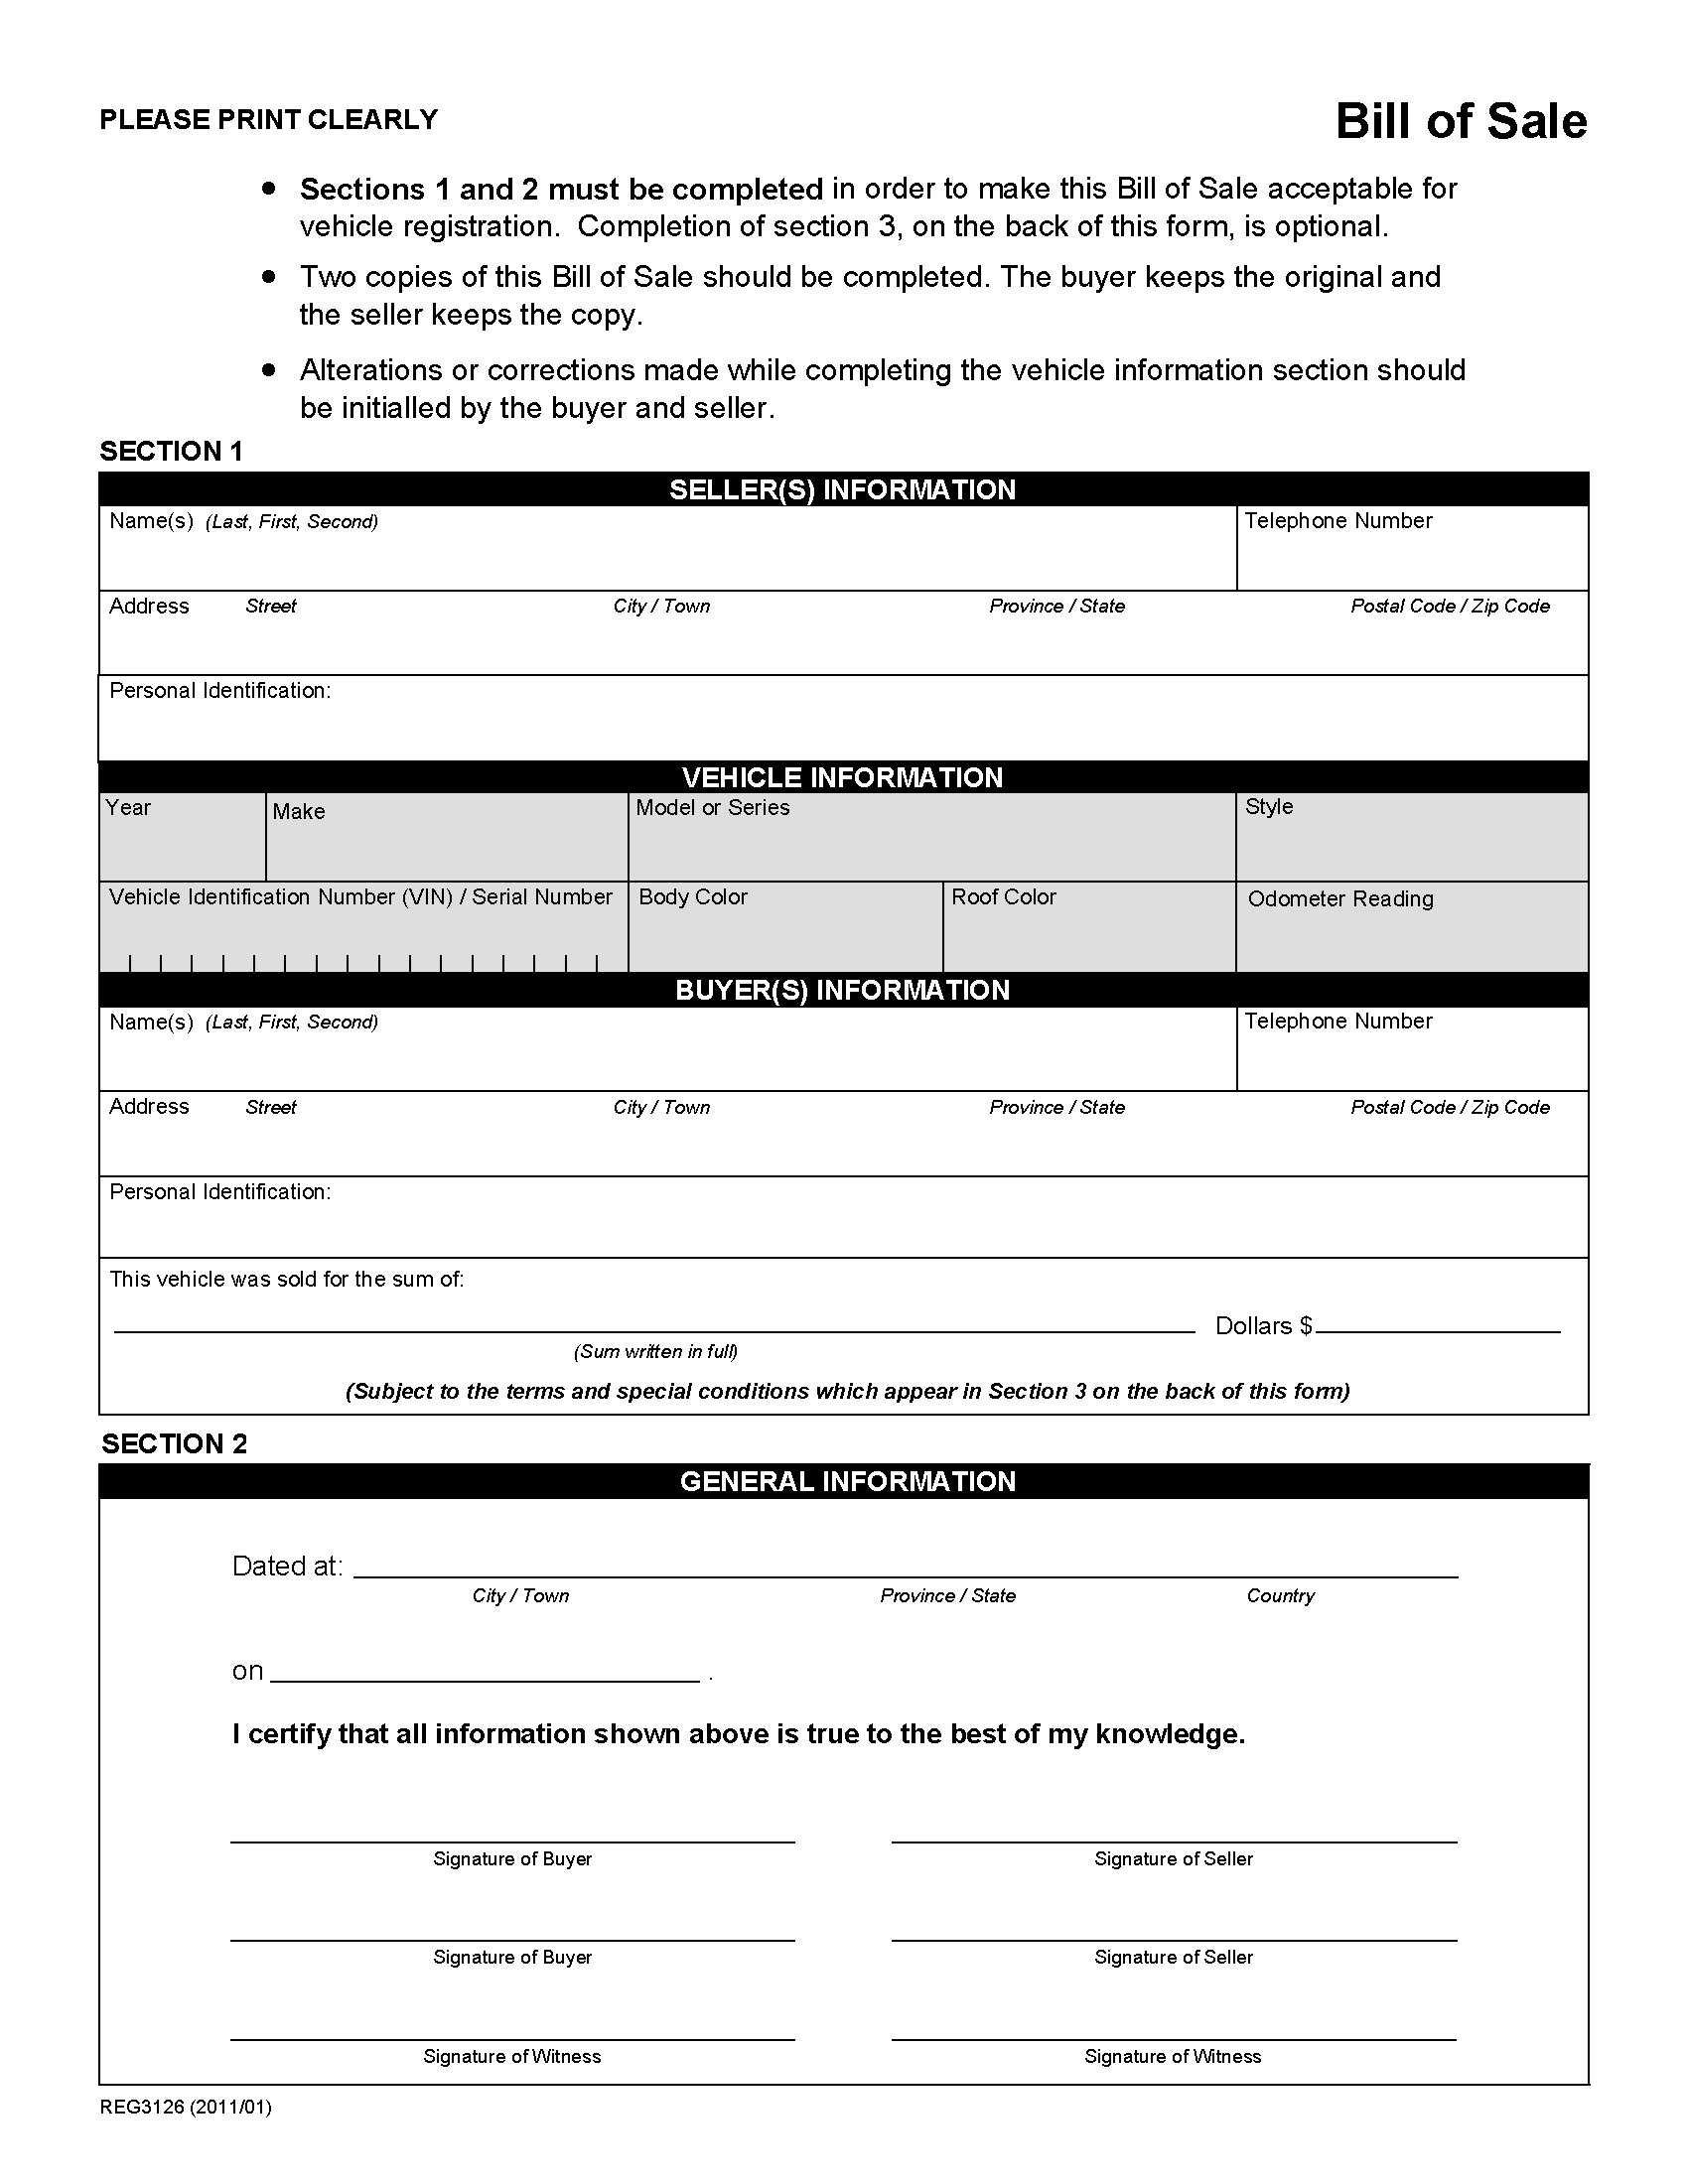 Bill Of Sale Form For Motor Vehicles Dmvorg Alberta Bill Of Sale Form For Vehicle Legal Forms And